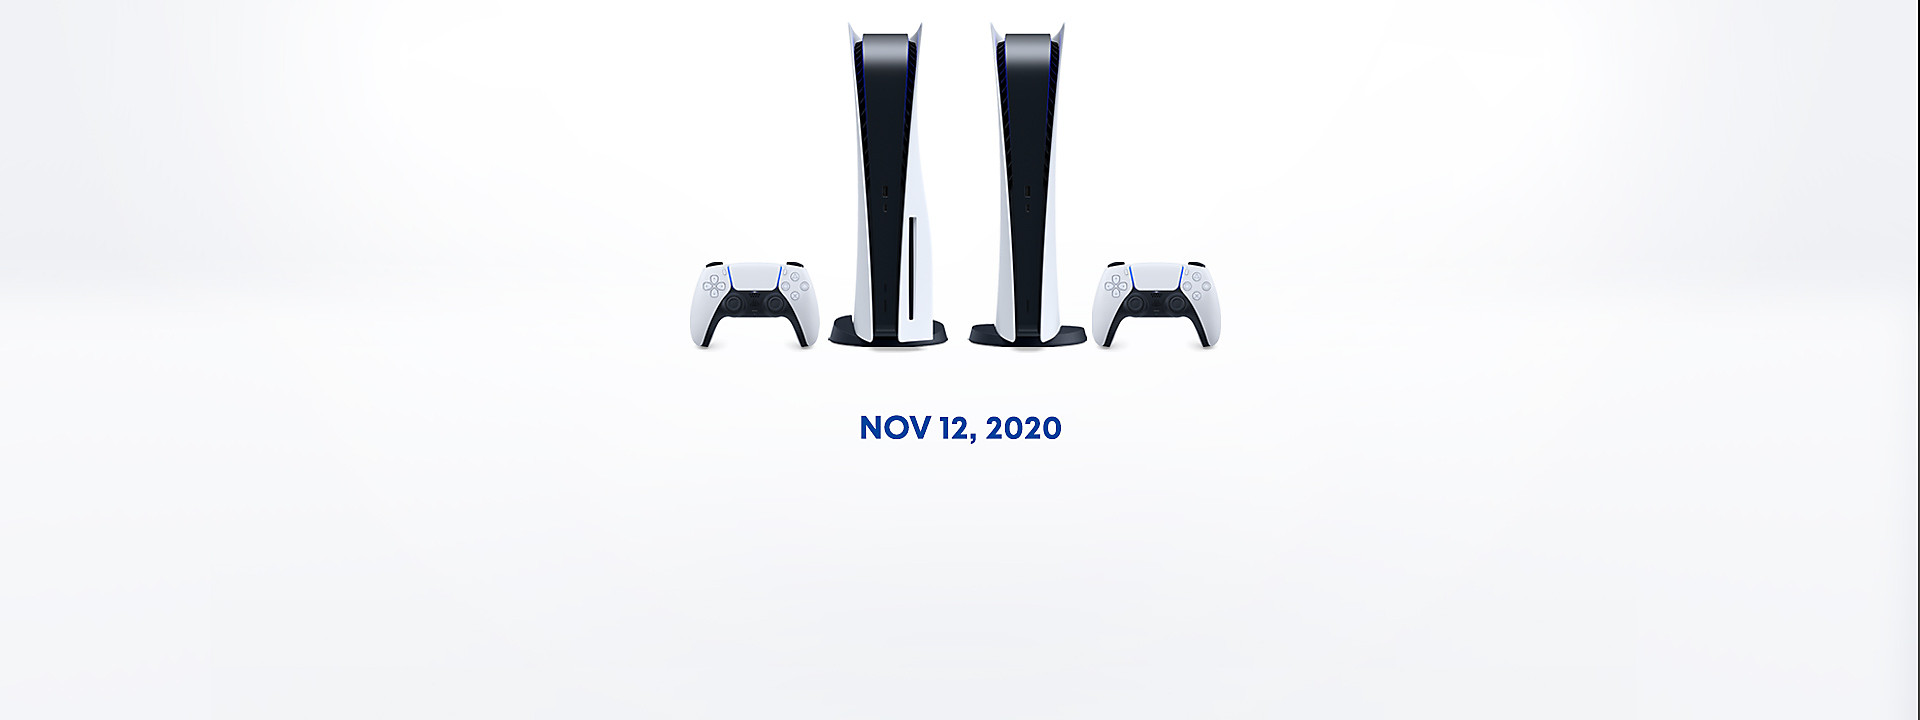 PlayStation 5 - Launches Nov 12, 2020